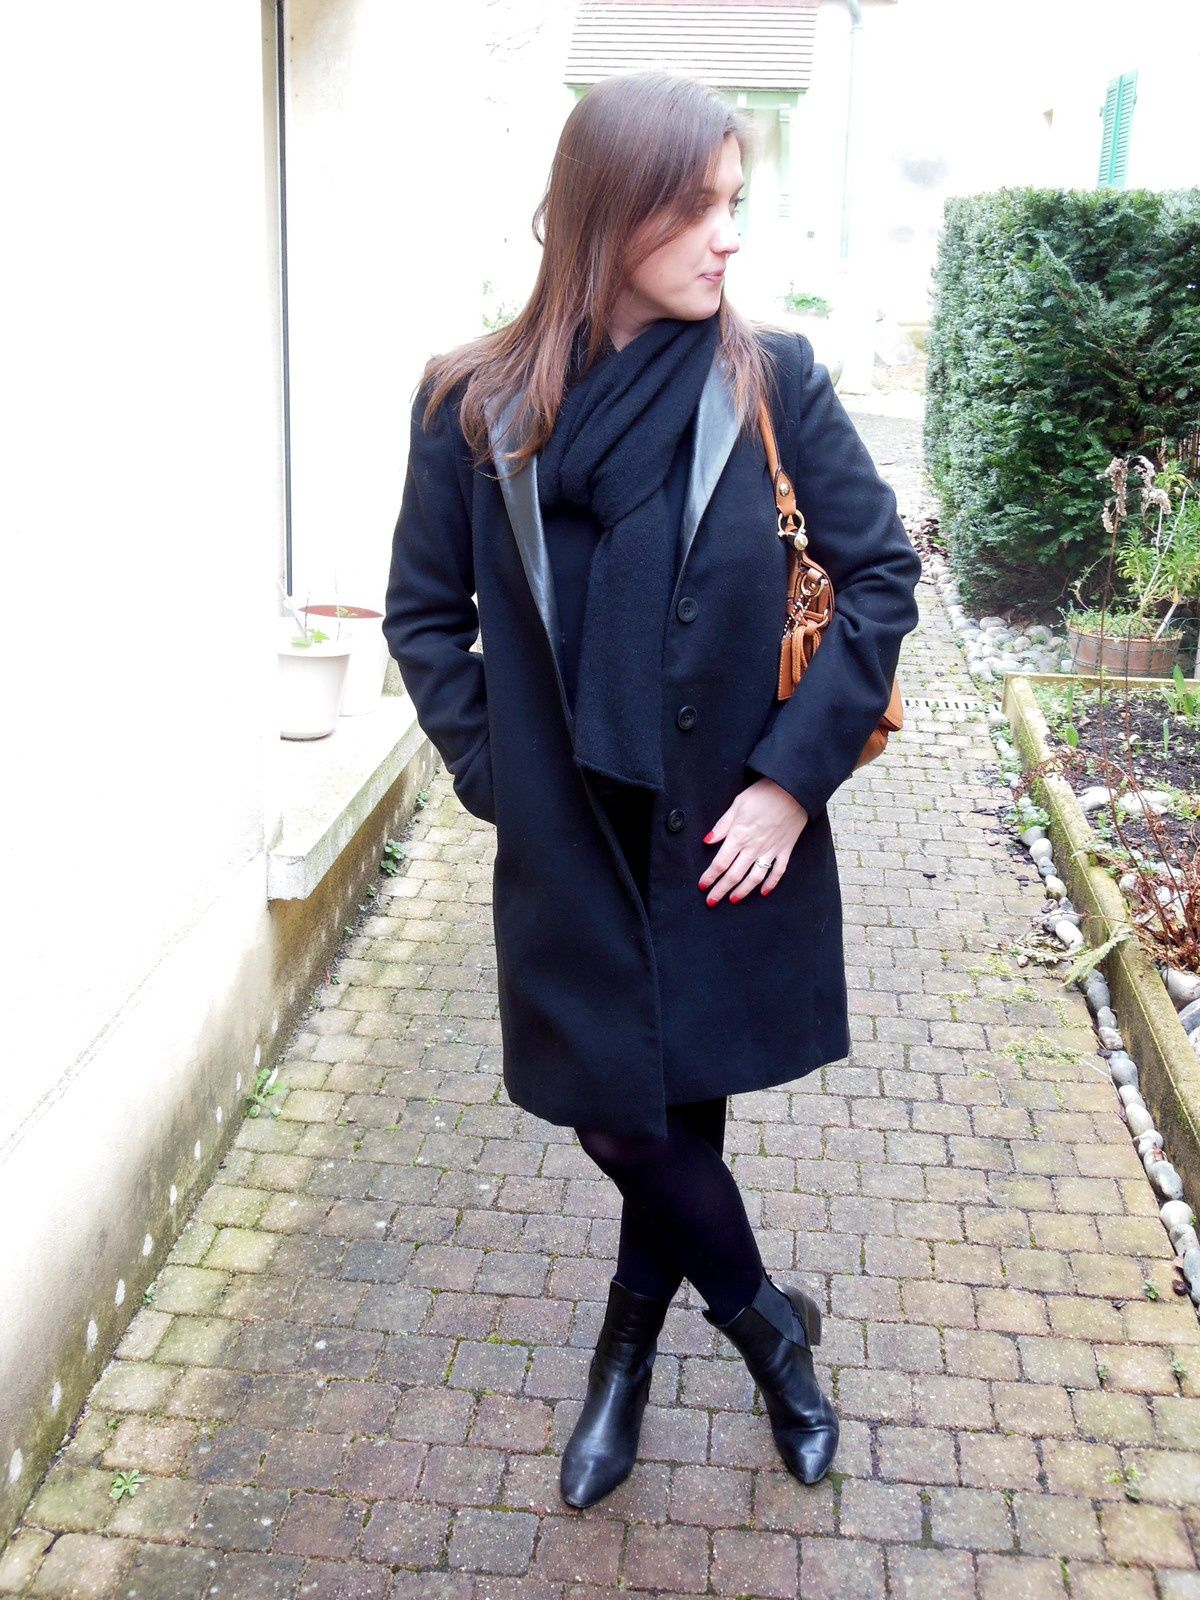 Manteau - Best Mountain // Robe - Clo&Se by MonShowroom // Collant - Well // Bottines - Zara // Echarpe - COS // Sac - Coach